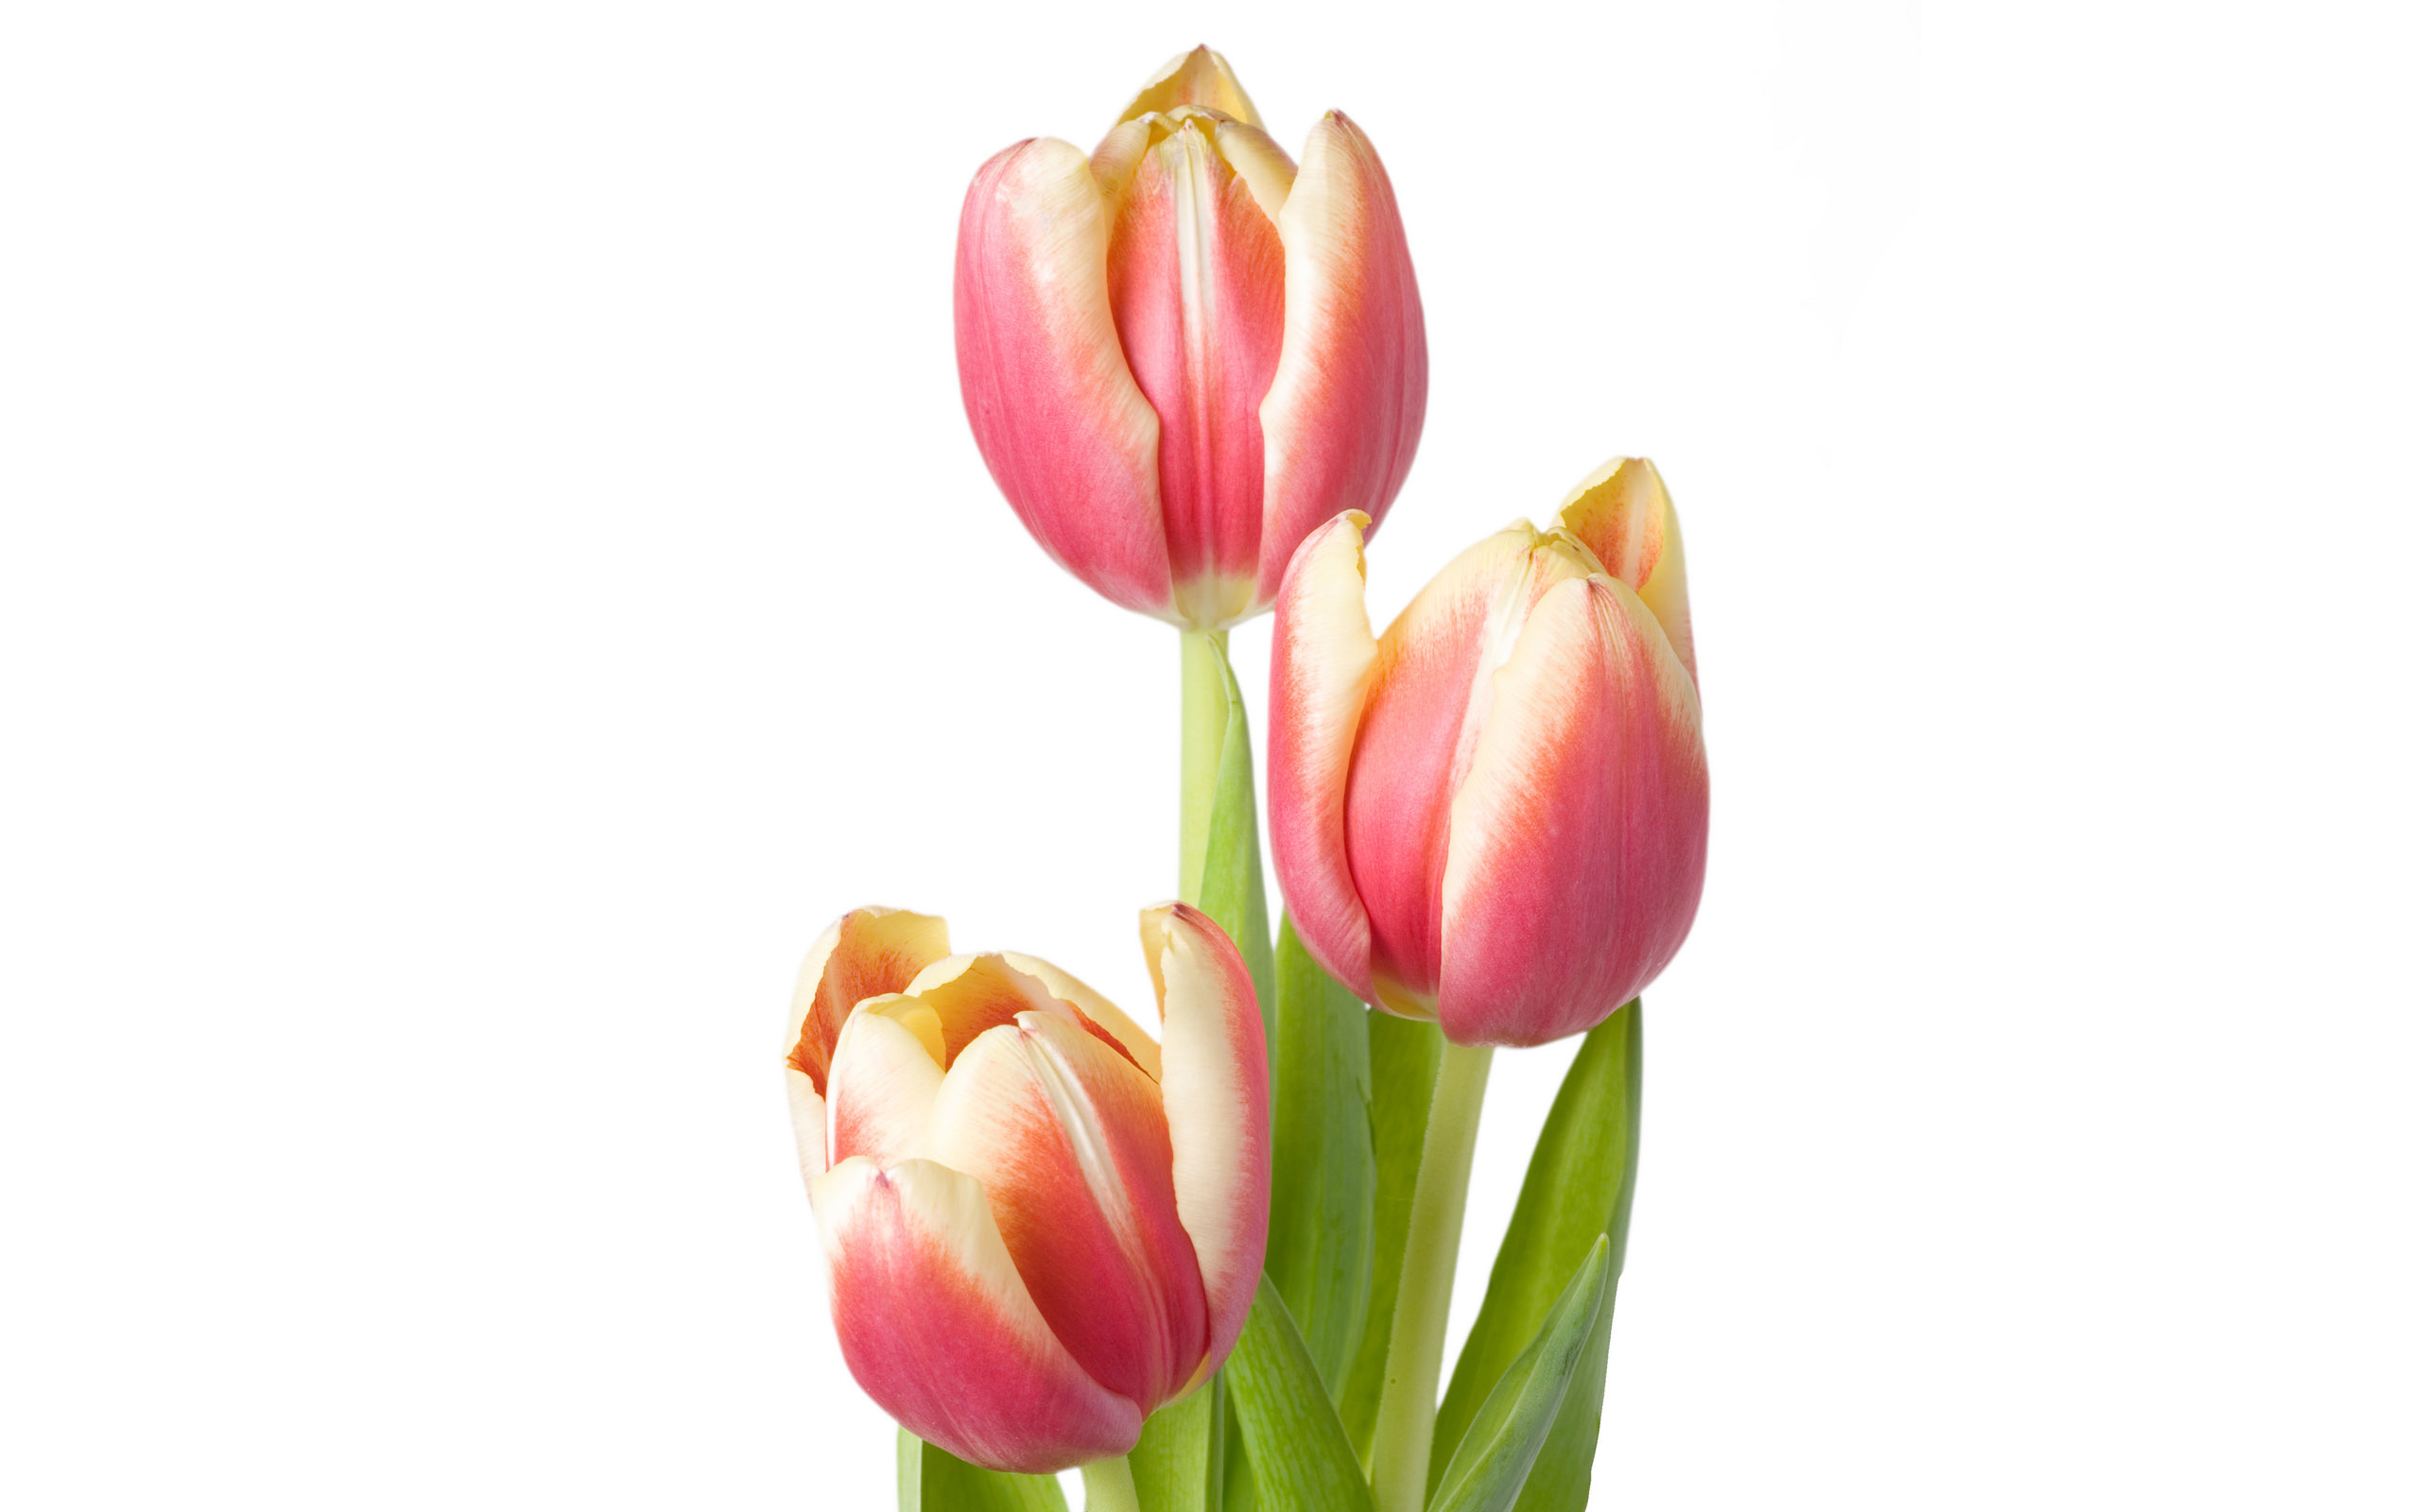 Large tulip photo 15021